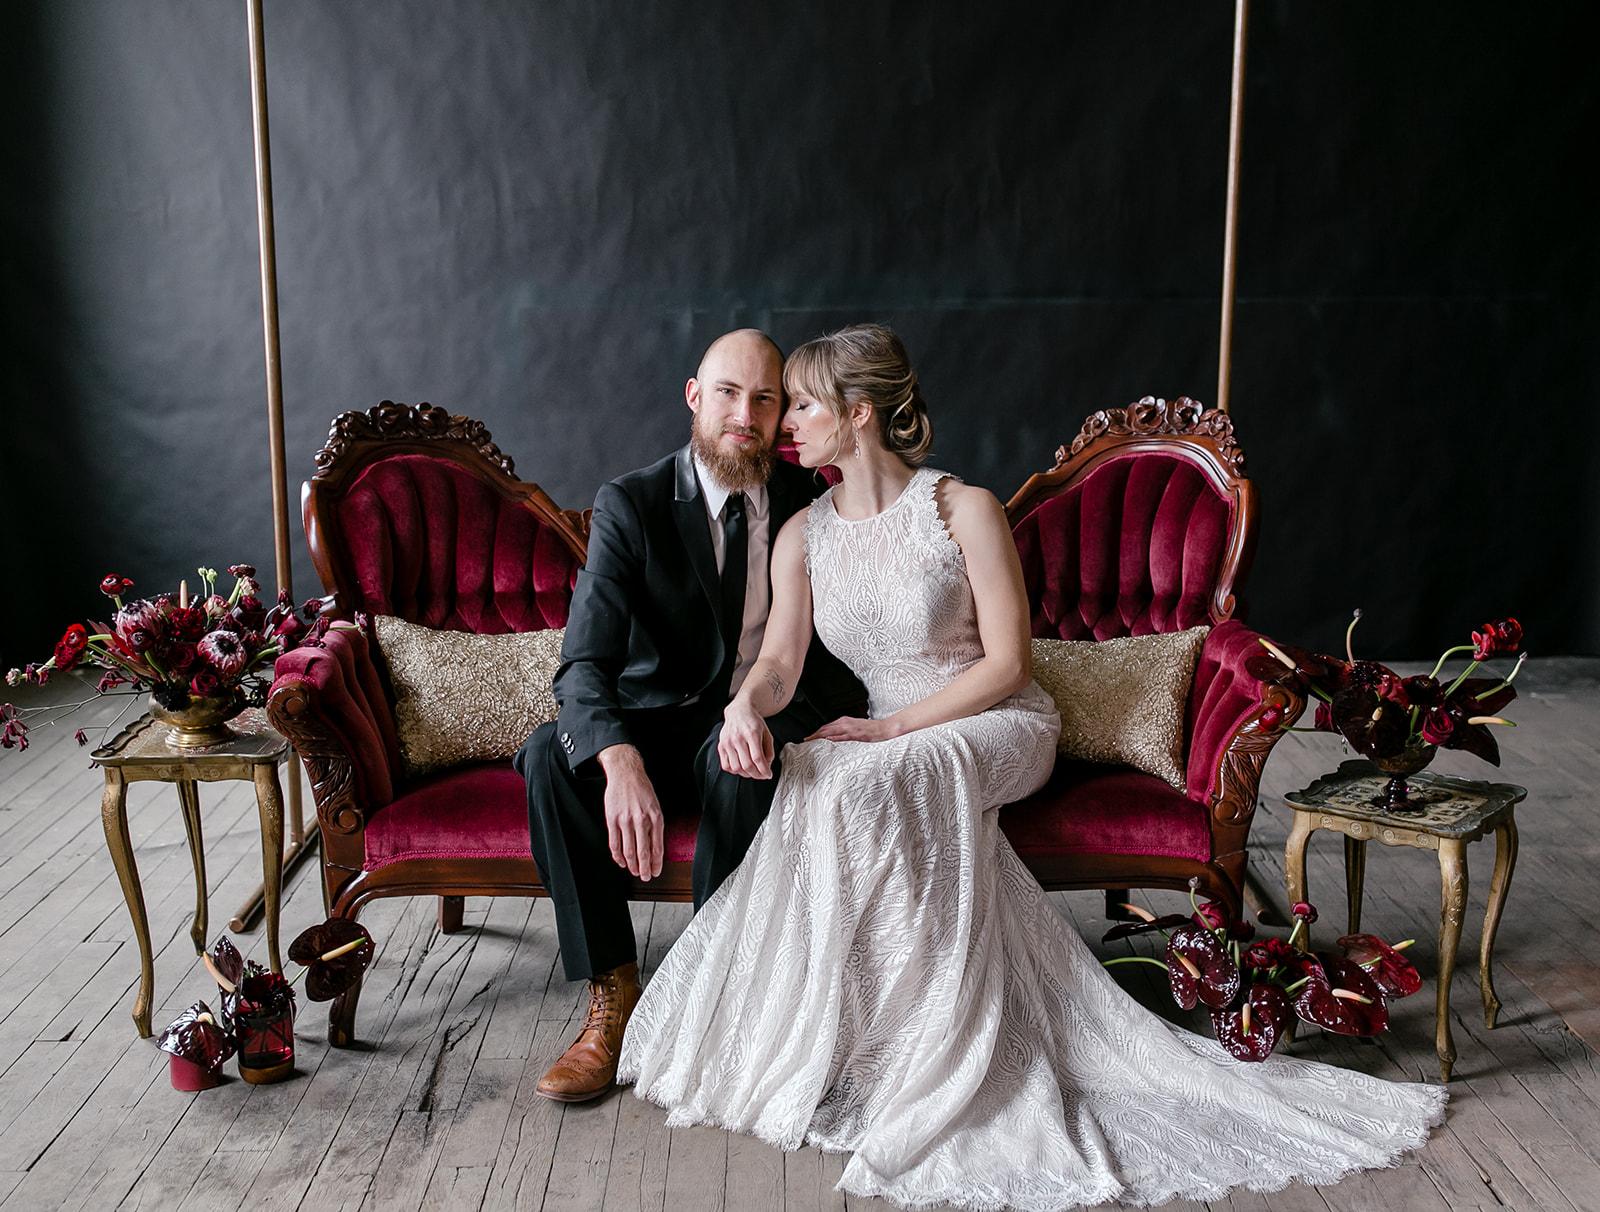 0baf2089f71d This couch from Spruce Wedding Rentals was the perfect choice to fit our  dark and moody vibe. Can you imagine taking your wedding portraits on a  piece like ...